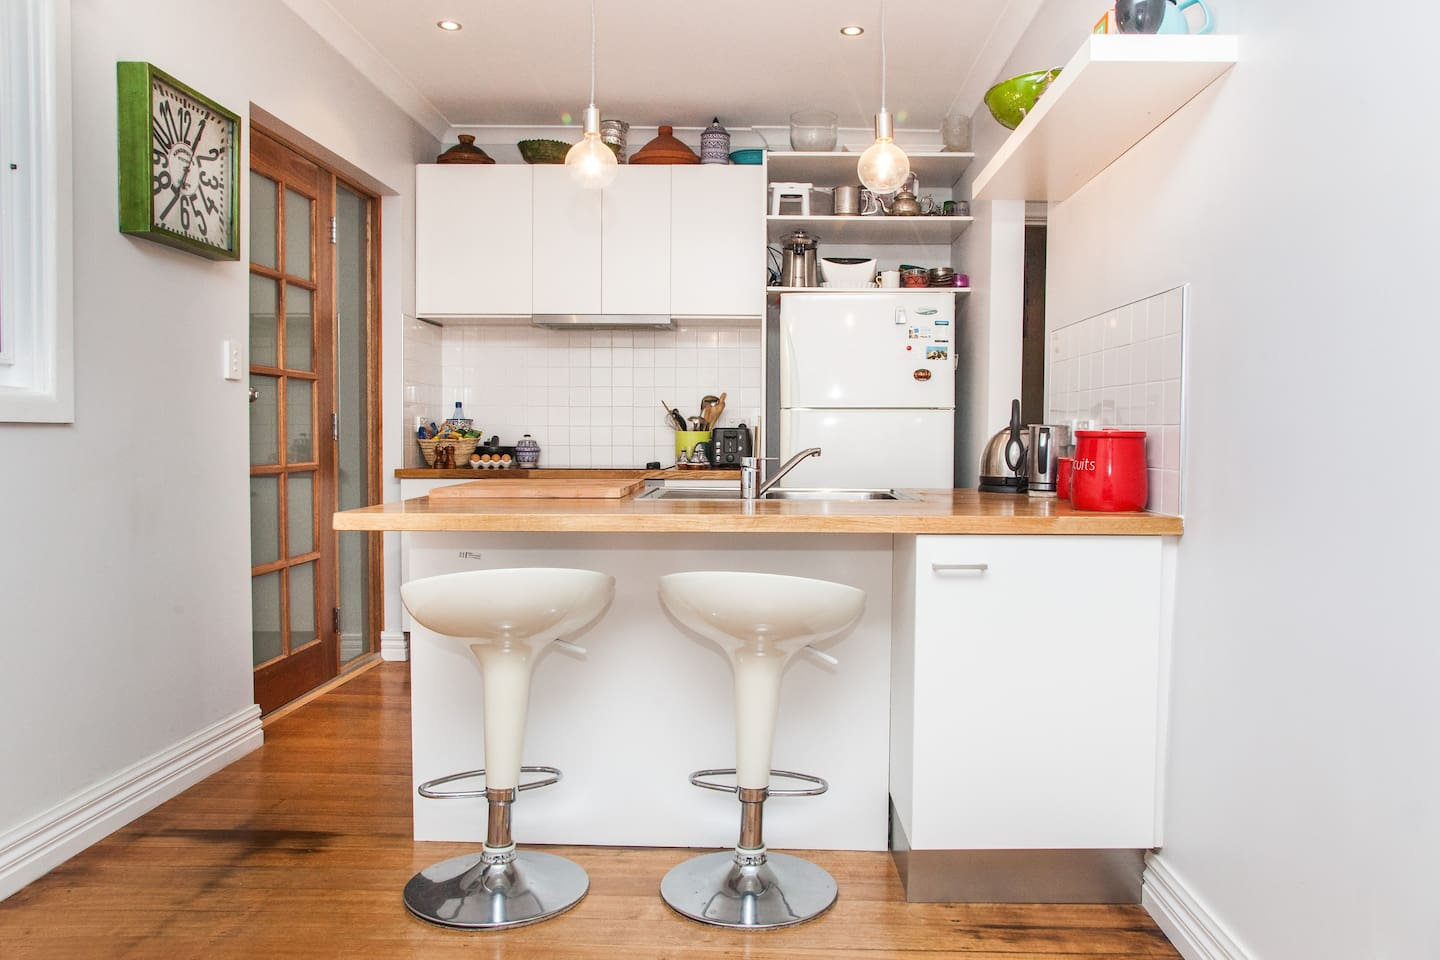 Fully equipped and newly renovated kitchen.